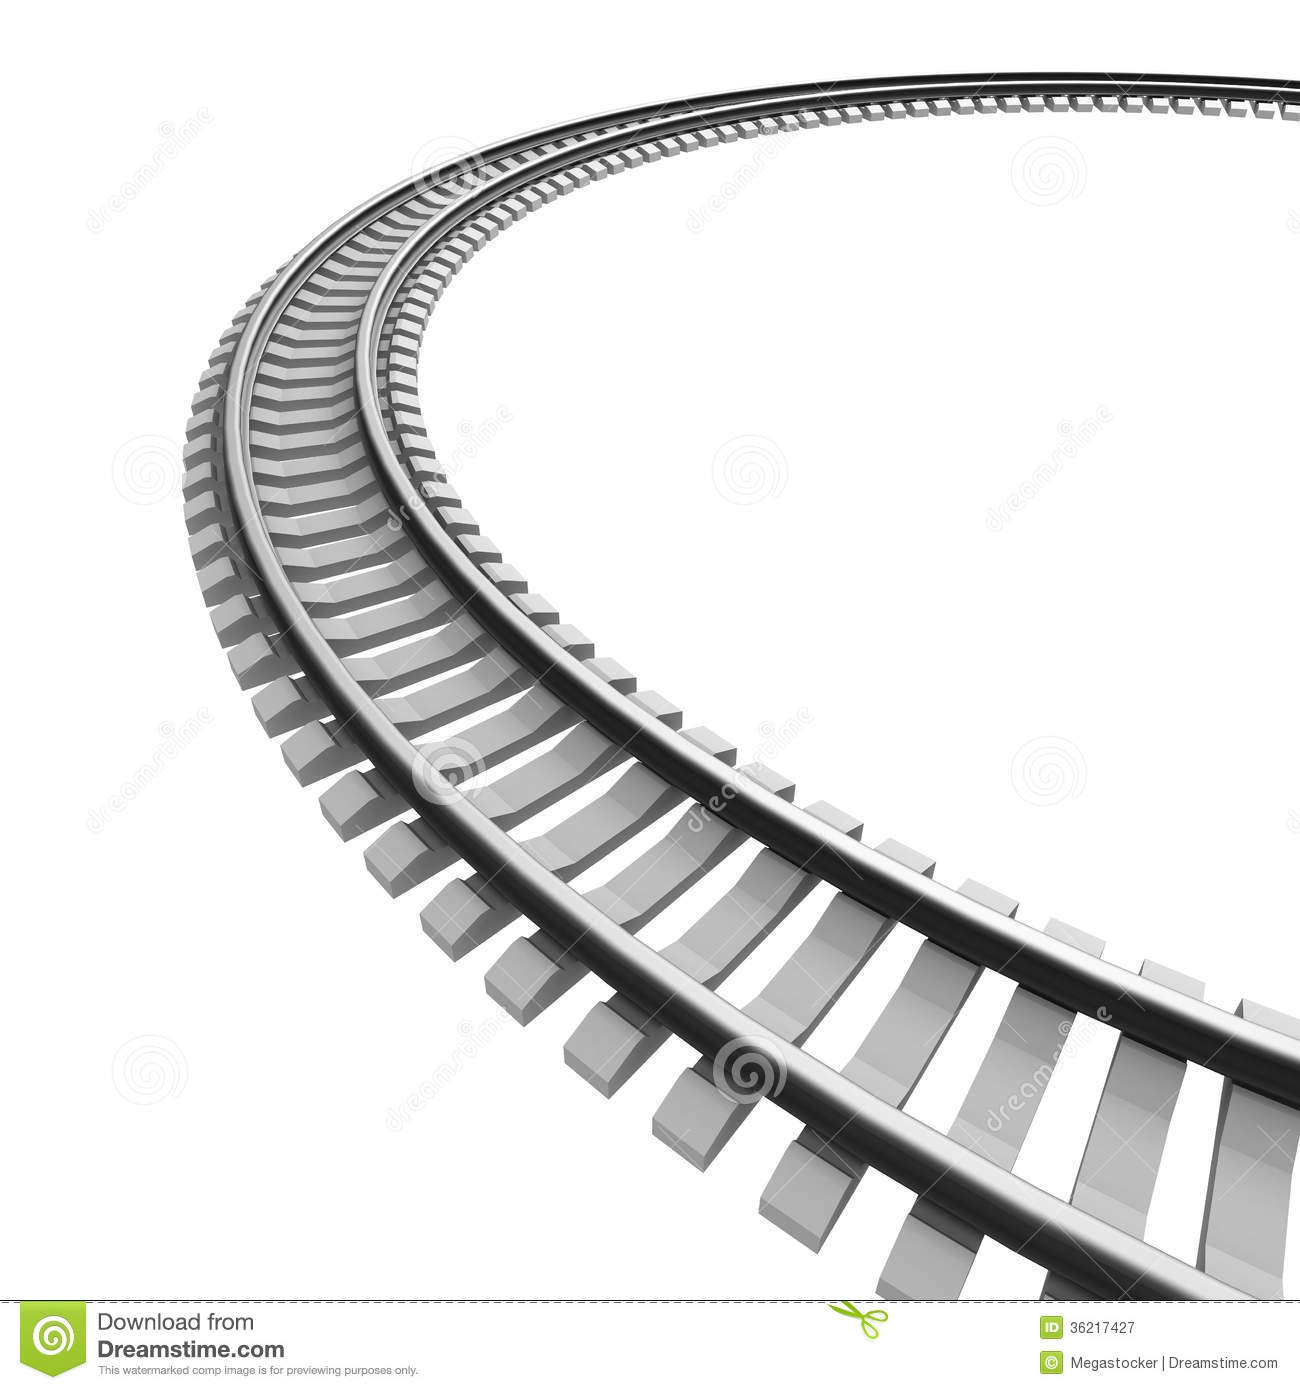 Railway track hd clipart.